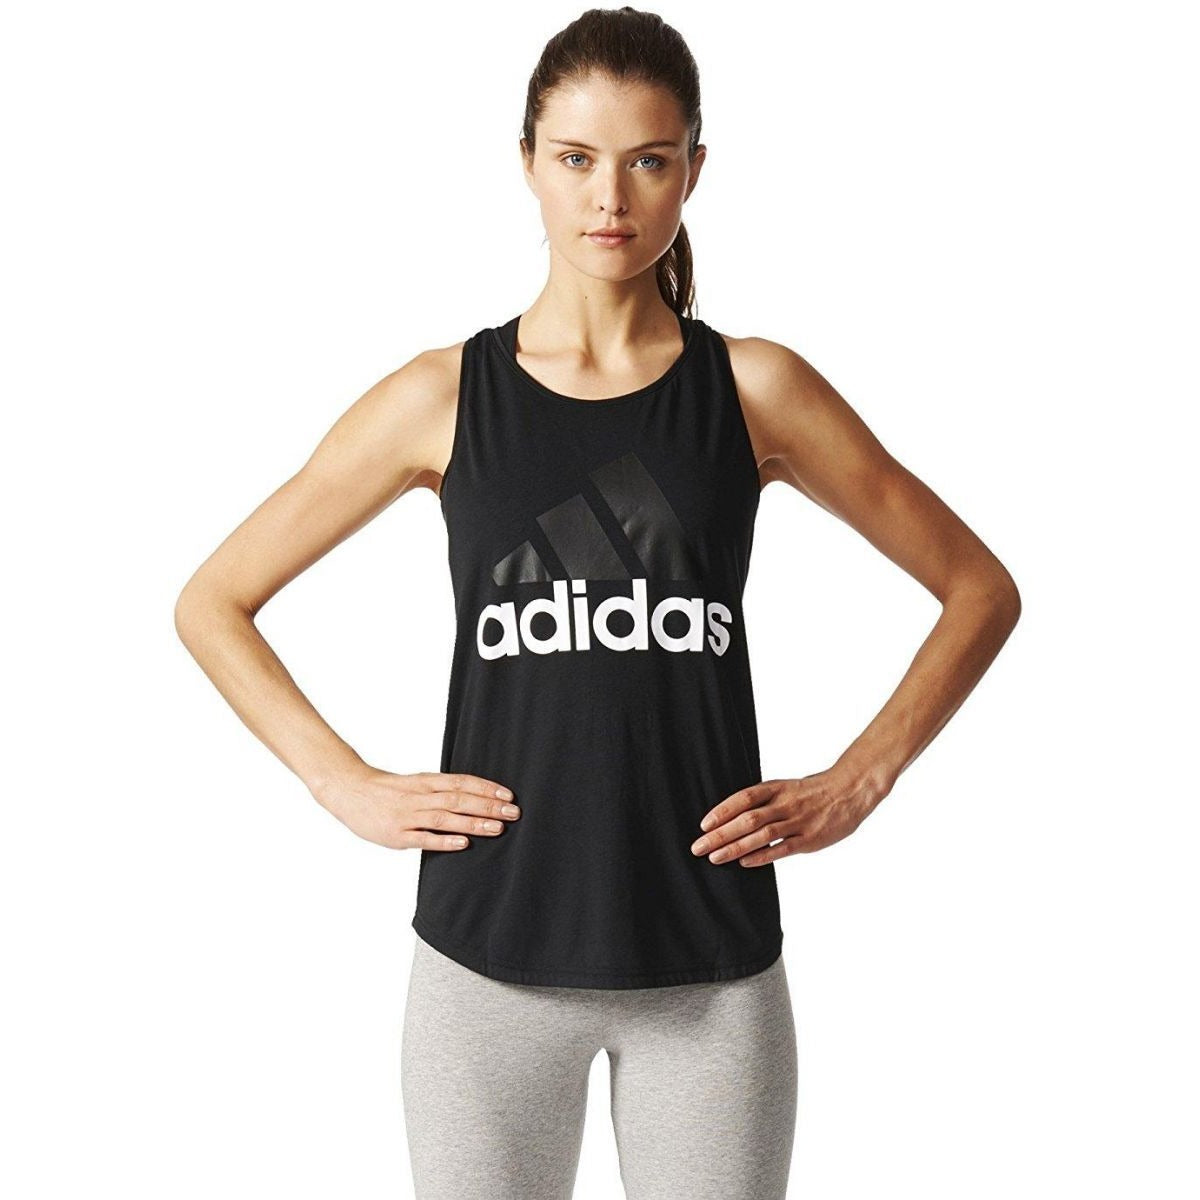 Adidas Black Round Neck Tank Top For Women